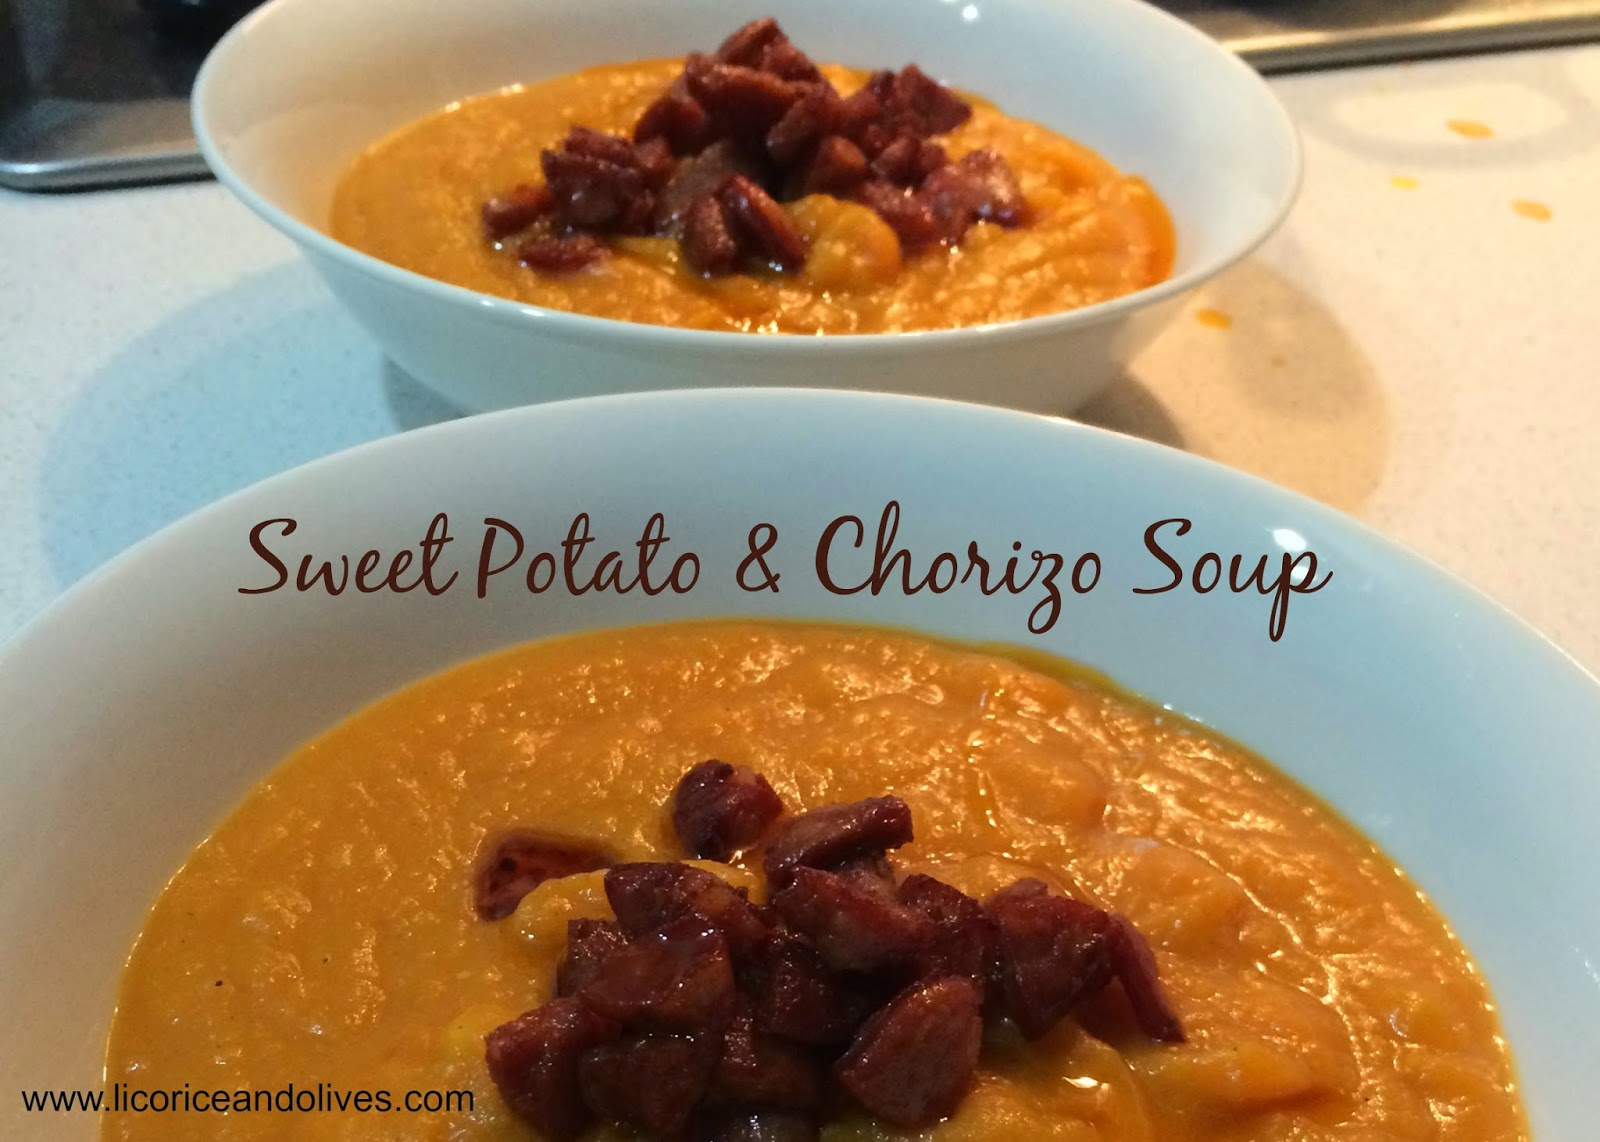 Licorice and Olives: Sweet Potato & Chorizo Soup Recipe